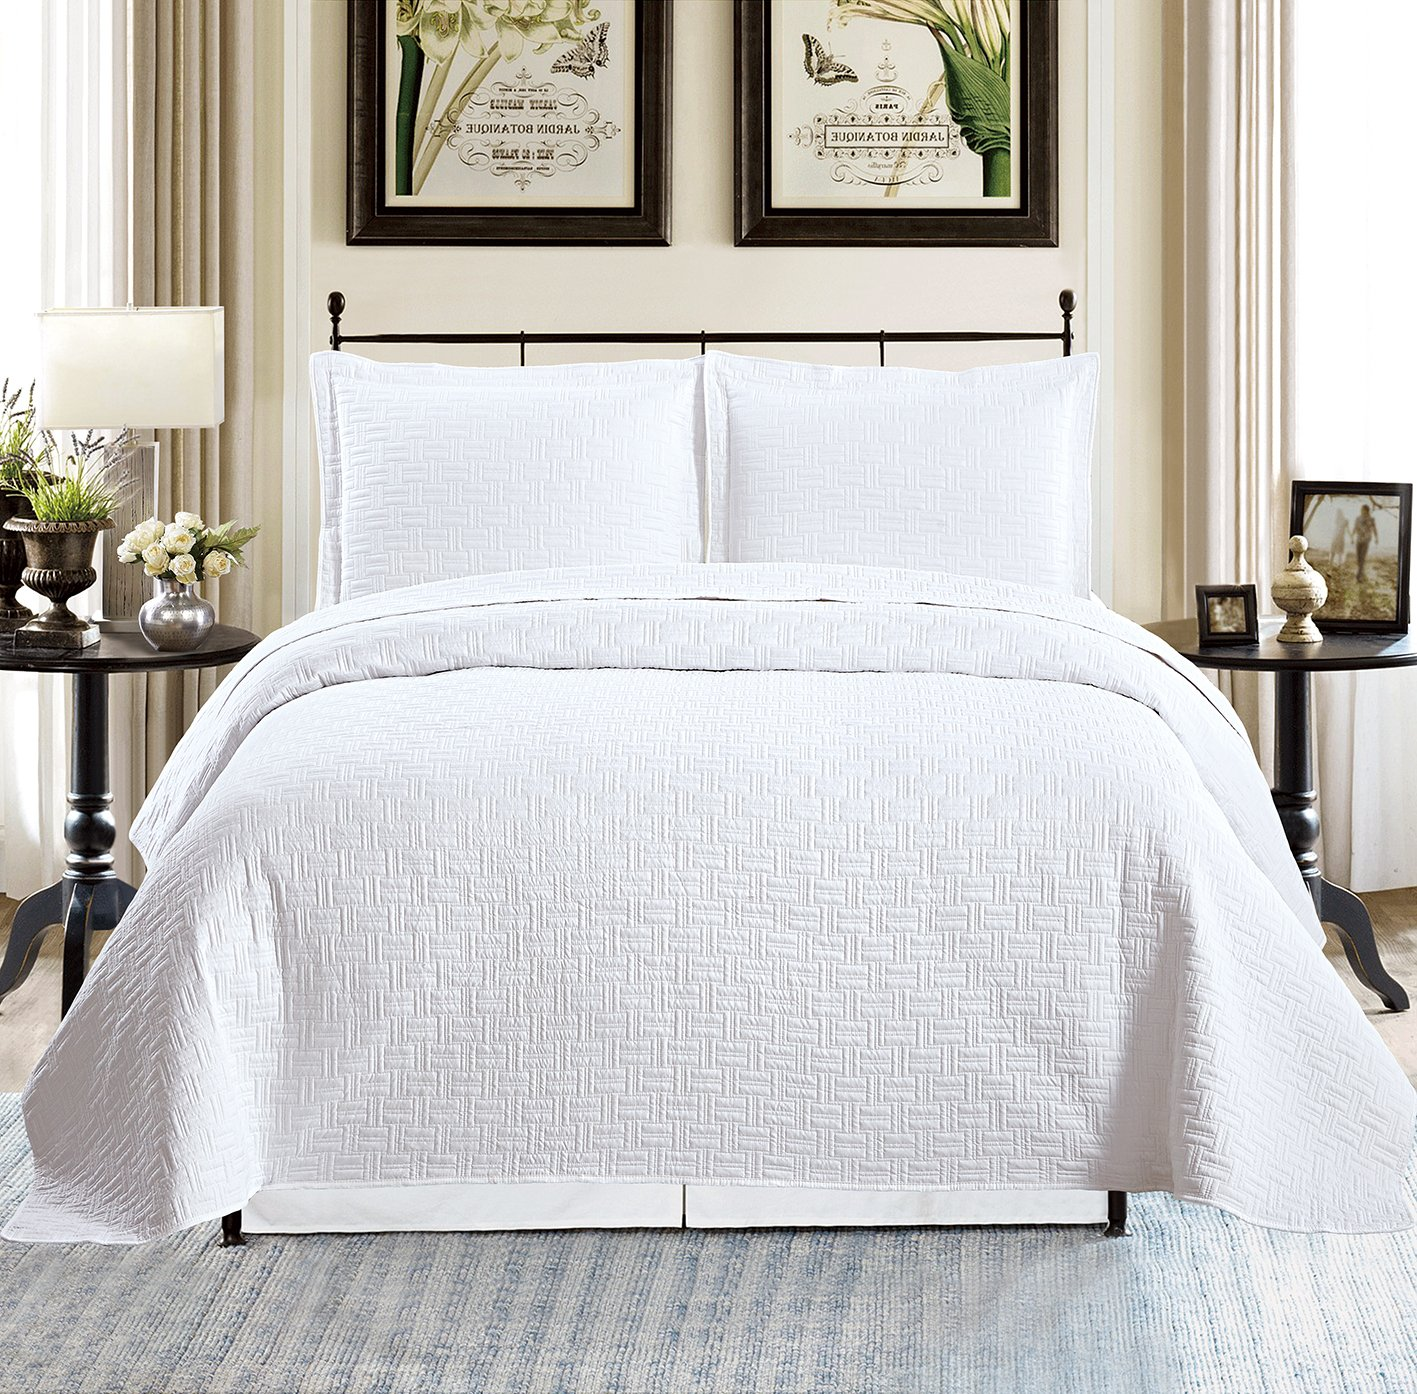 All American Collection New Solid 3pc White Plaid Design Bedspread/Quilt Set Queen Size